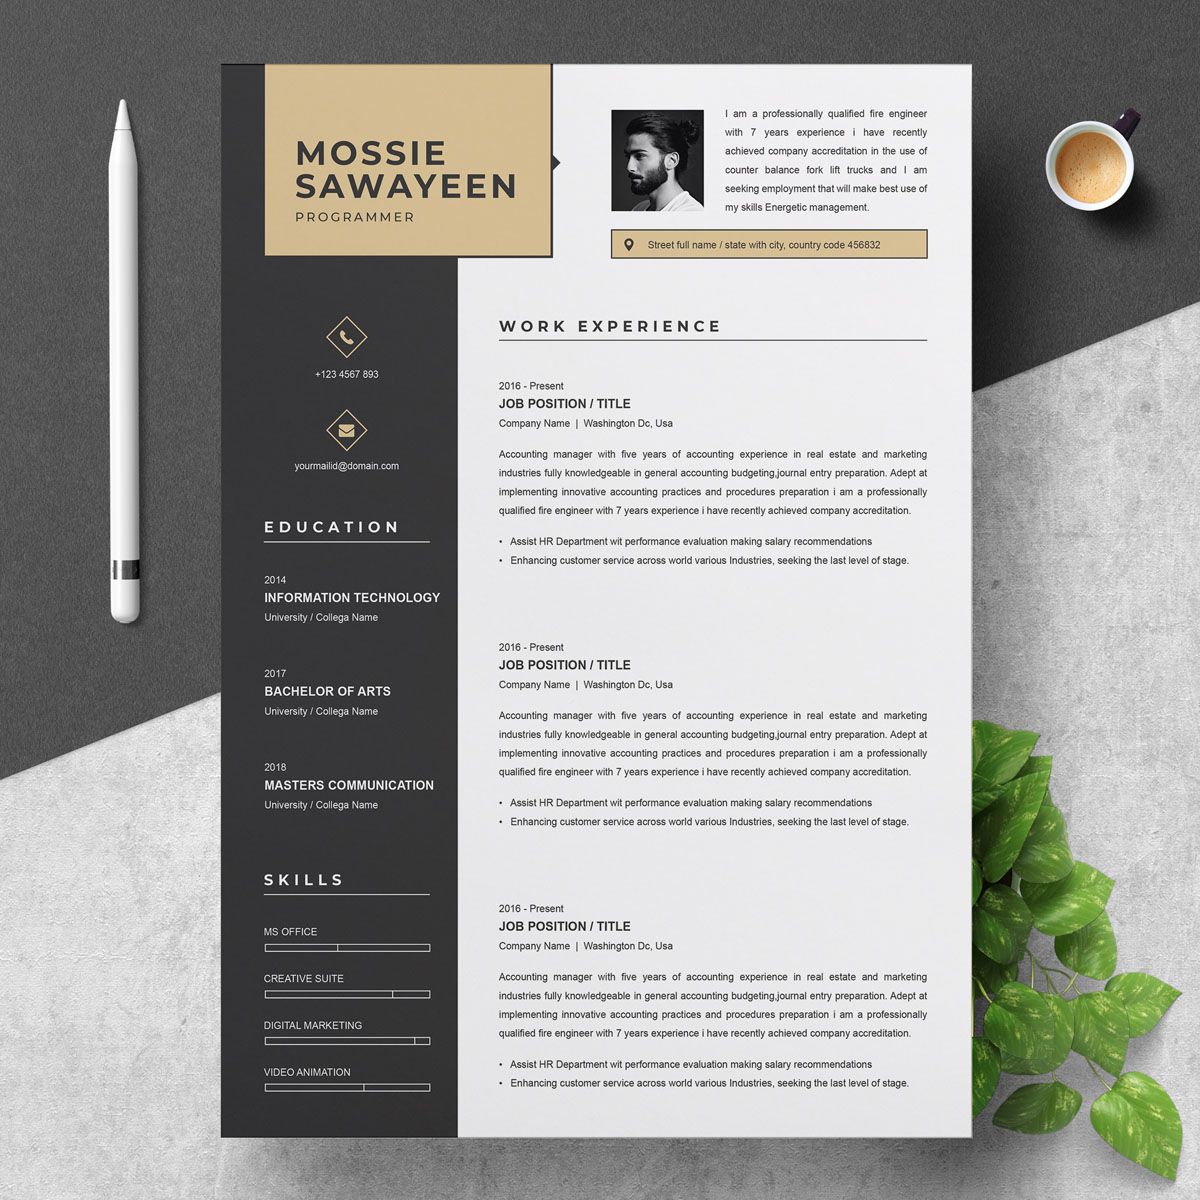 Mosee Savayeen Resume Template